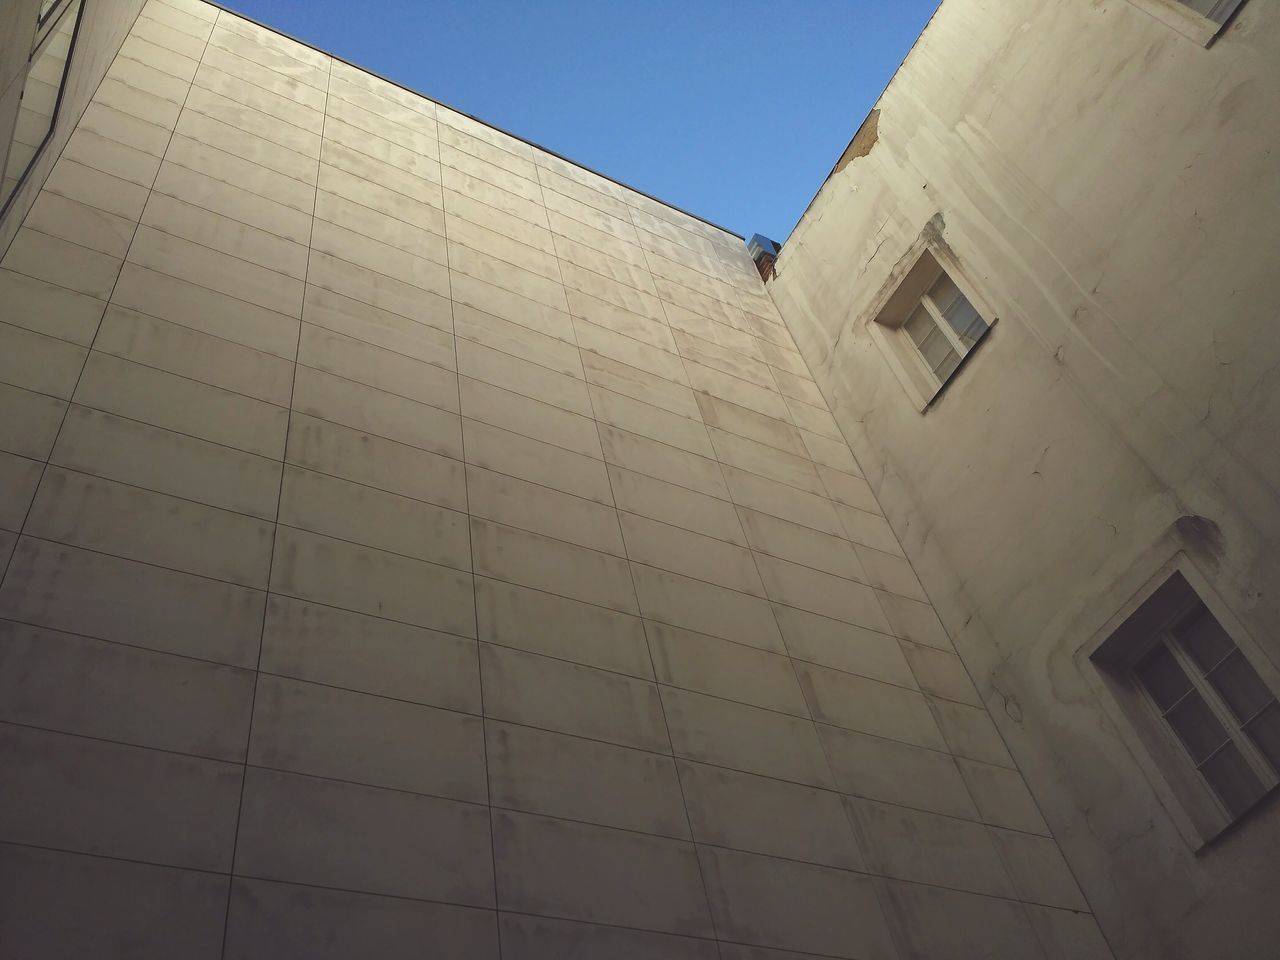 architecture, low angle view, built structure, building exterior, no people, day, clear sky, outdoors, sky